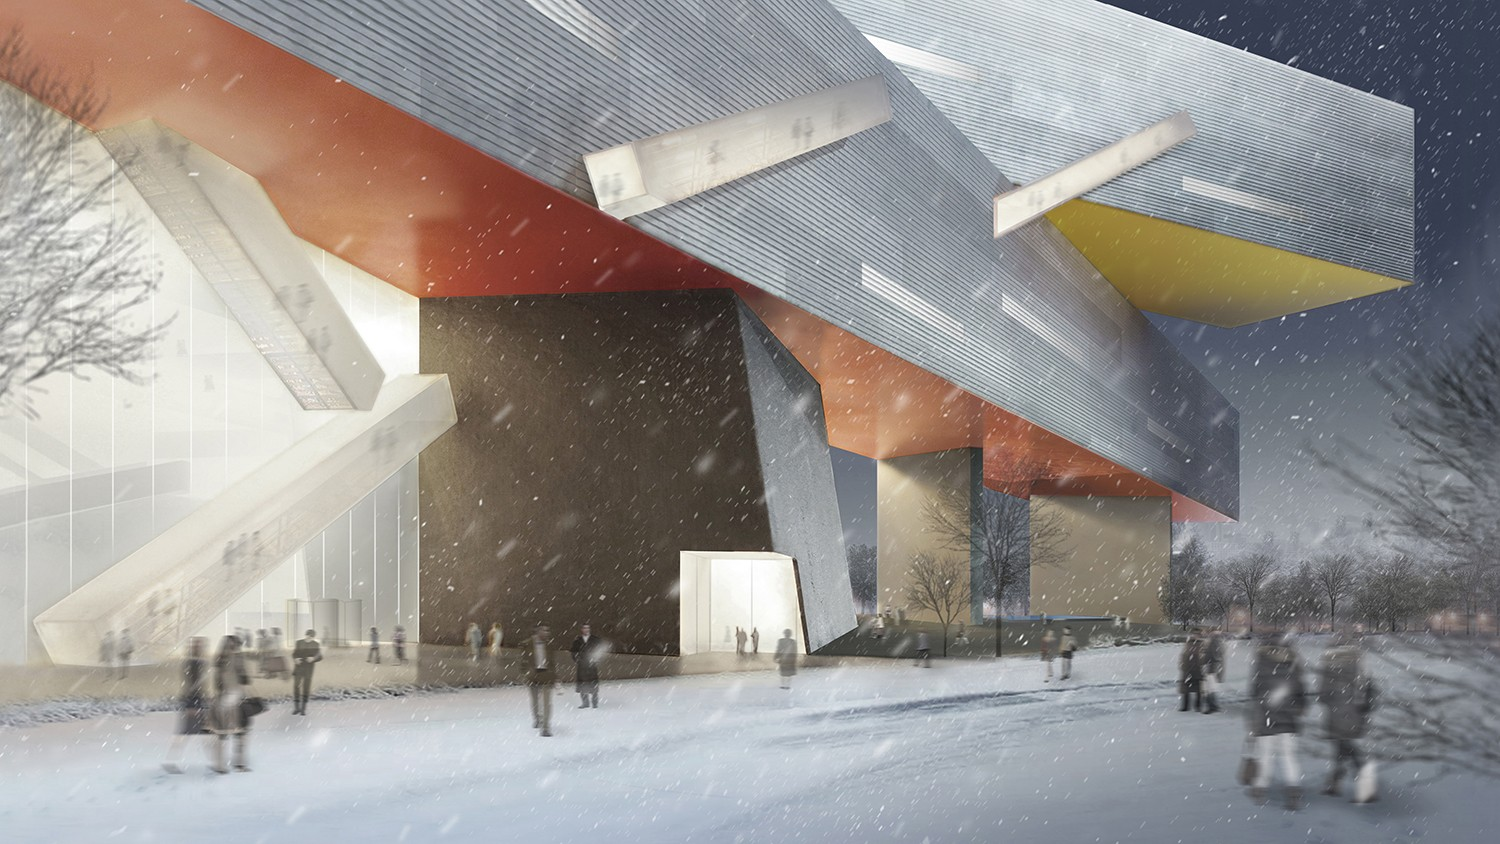 https://stevenholl.sfo2.digitaloceanspaces.com/uploads/projects/project-images/StevenHollArchitects_NCCA_view_snowynight_WH.jpg